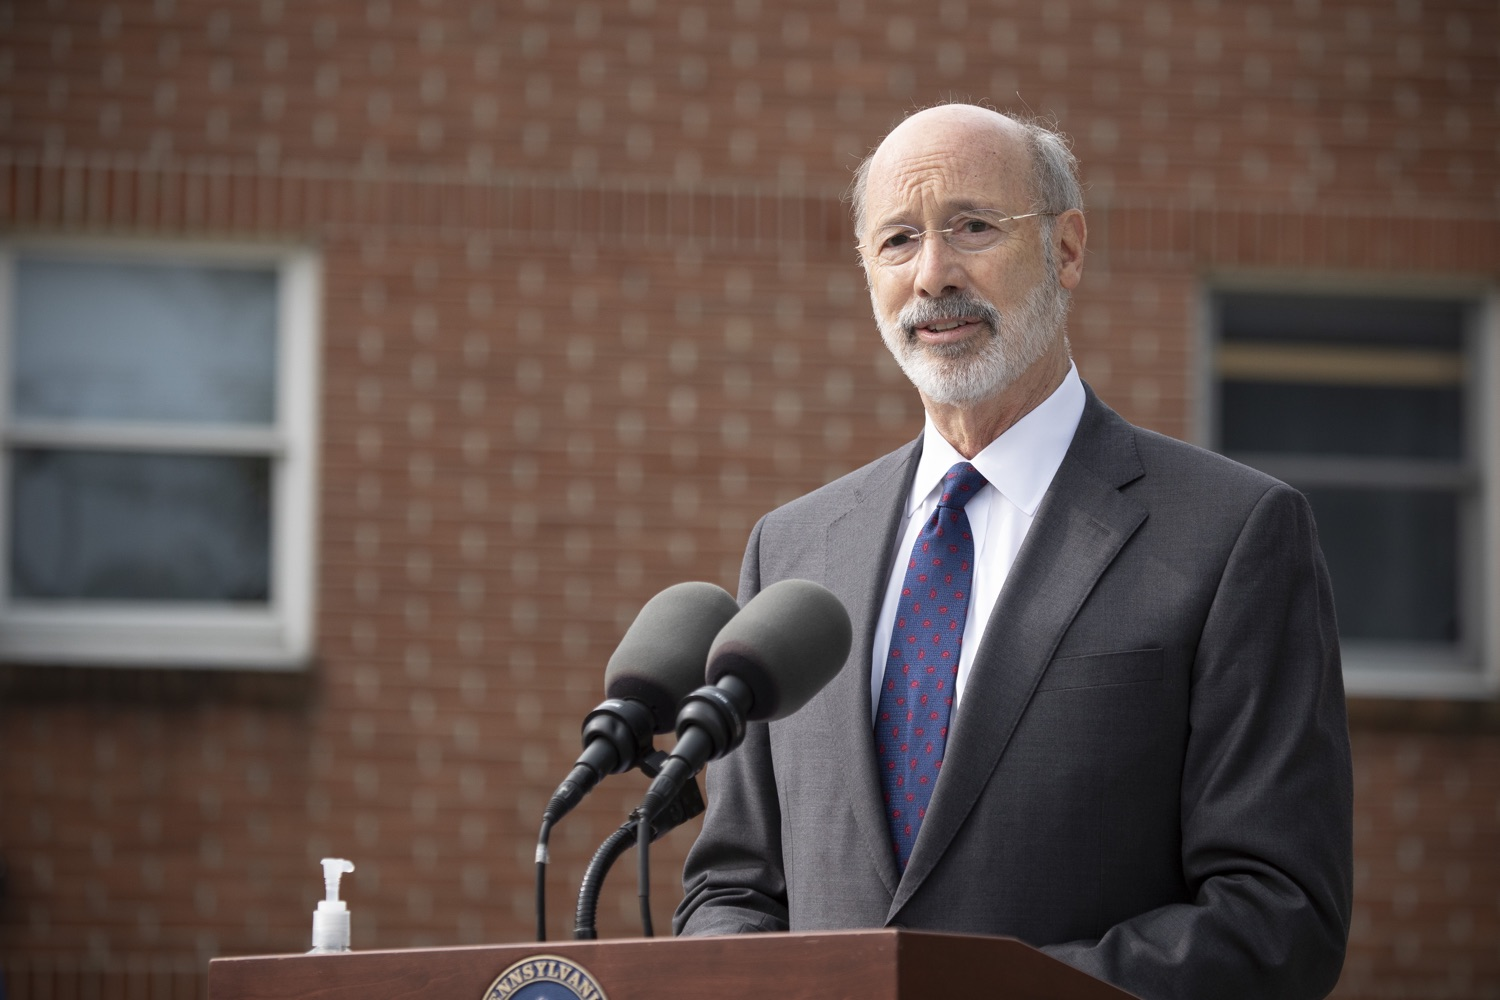 "<a href=""https://filesource.wostreaming.net/commonwealthofpa/photo/18259_gov_electionReform_dz_007.jpg"" target=""_blank"">⇣ Download Photo<br></a>Pennsylvania Governor Tom Wolf speaking to the press.  With only seven weeks left before the Nov. 3 election, Governor Tom Wolf is urging immediate legislative action to ensure voters receive their mail-in ballots early and give counties more time to process and count ballots before election day. The governor also reassured Pennsylvanians that in-person voting is safe, and all eligible votes will be counted. SEPTEMBER 14, 2020 - YORK, PA."